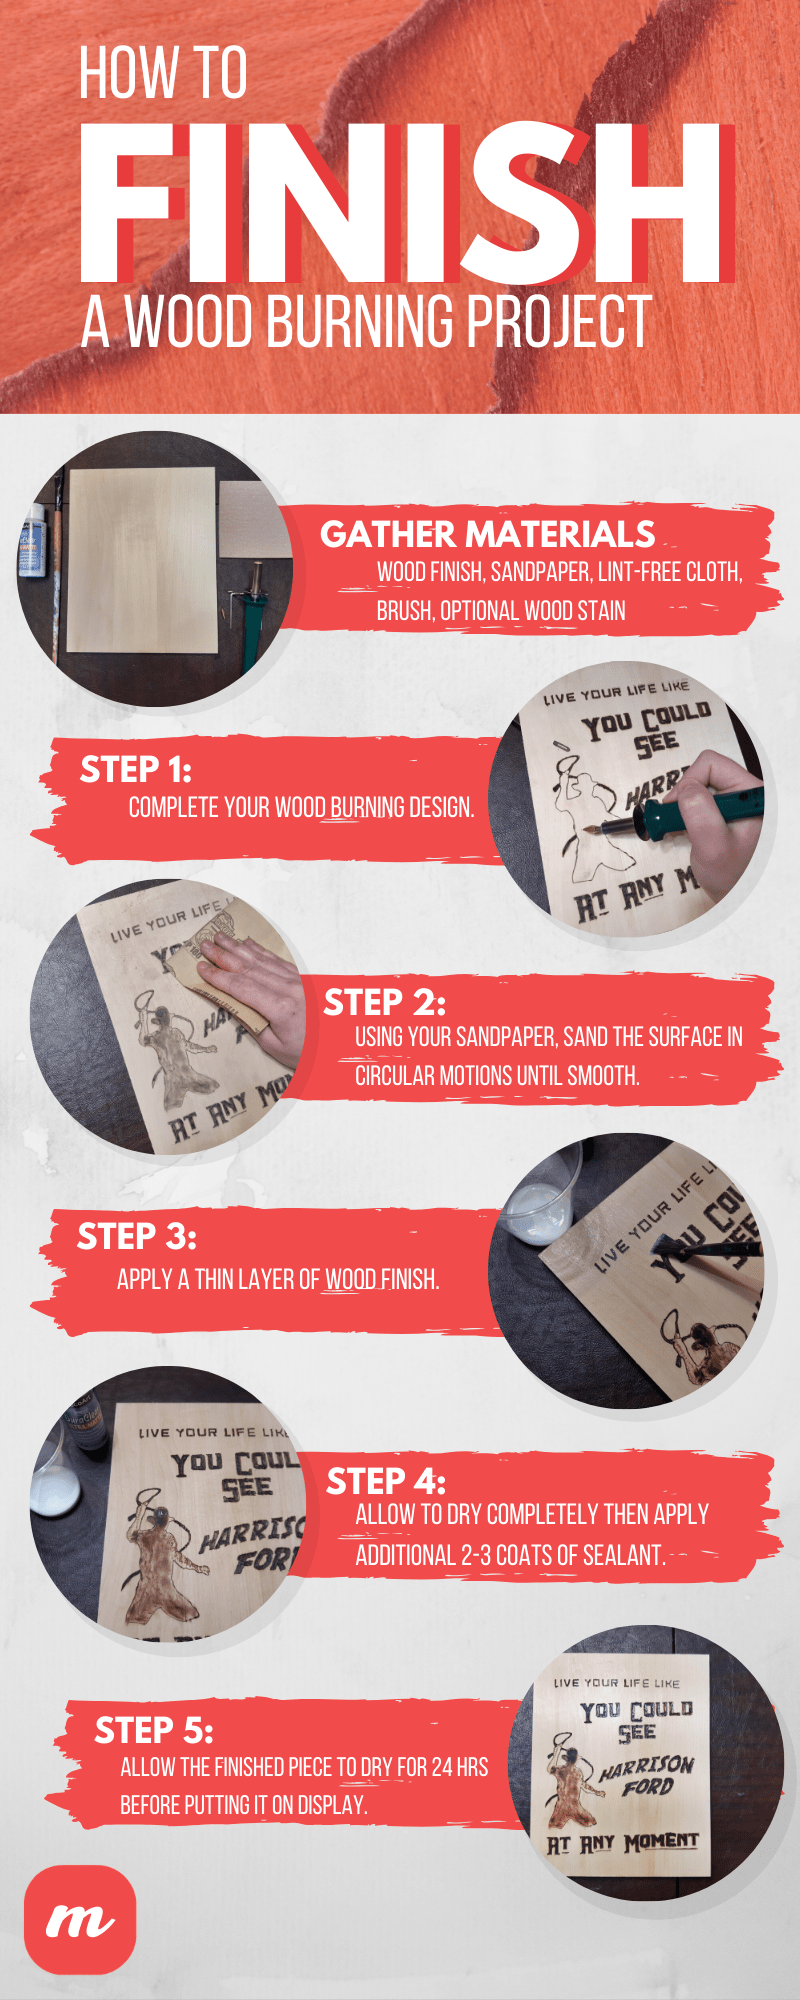 How to Seal and Finish a Wood Burning Project - Infographic